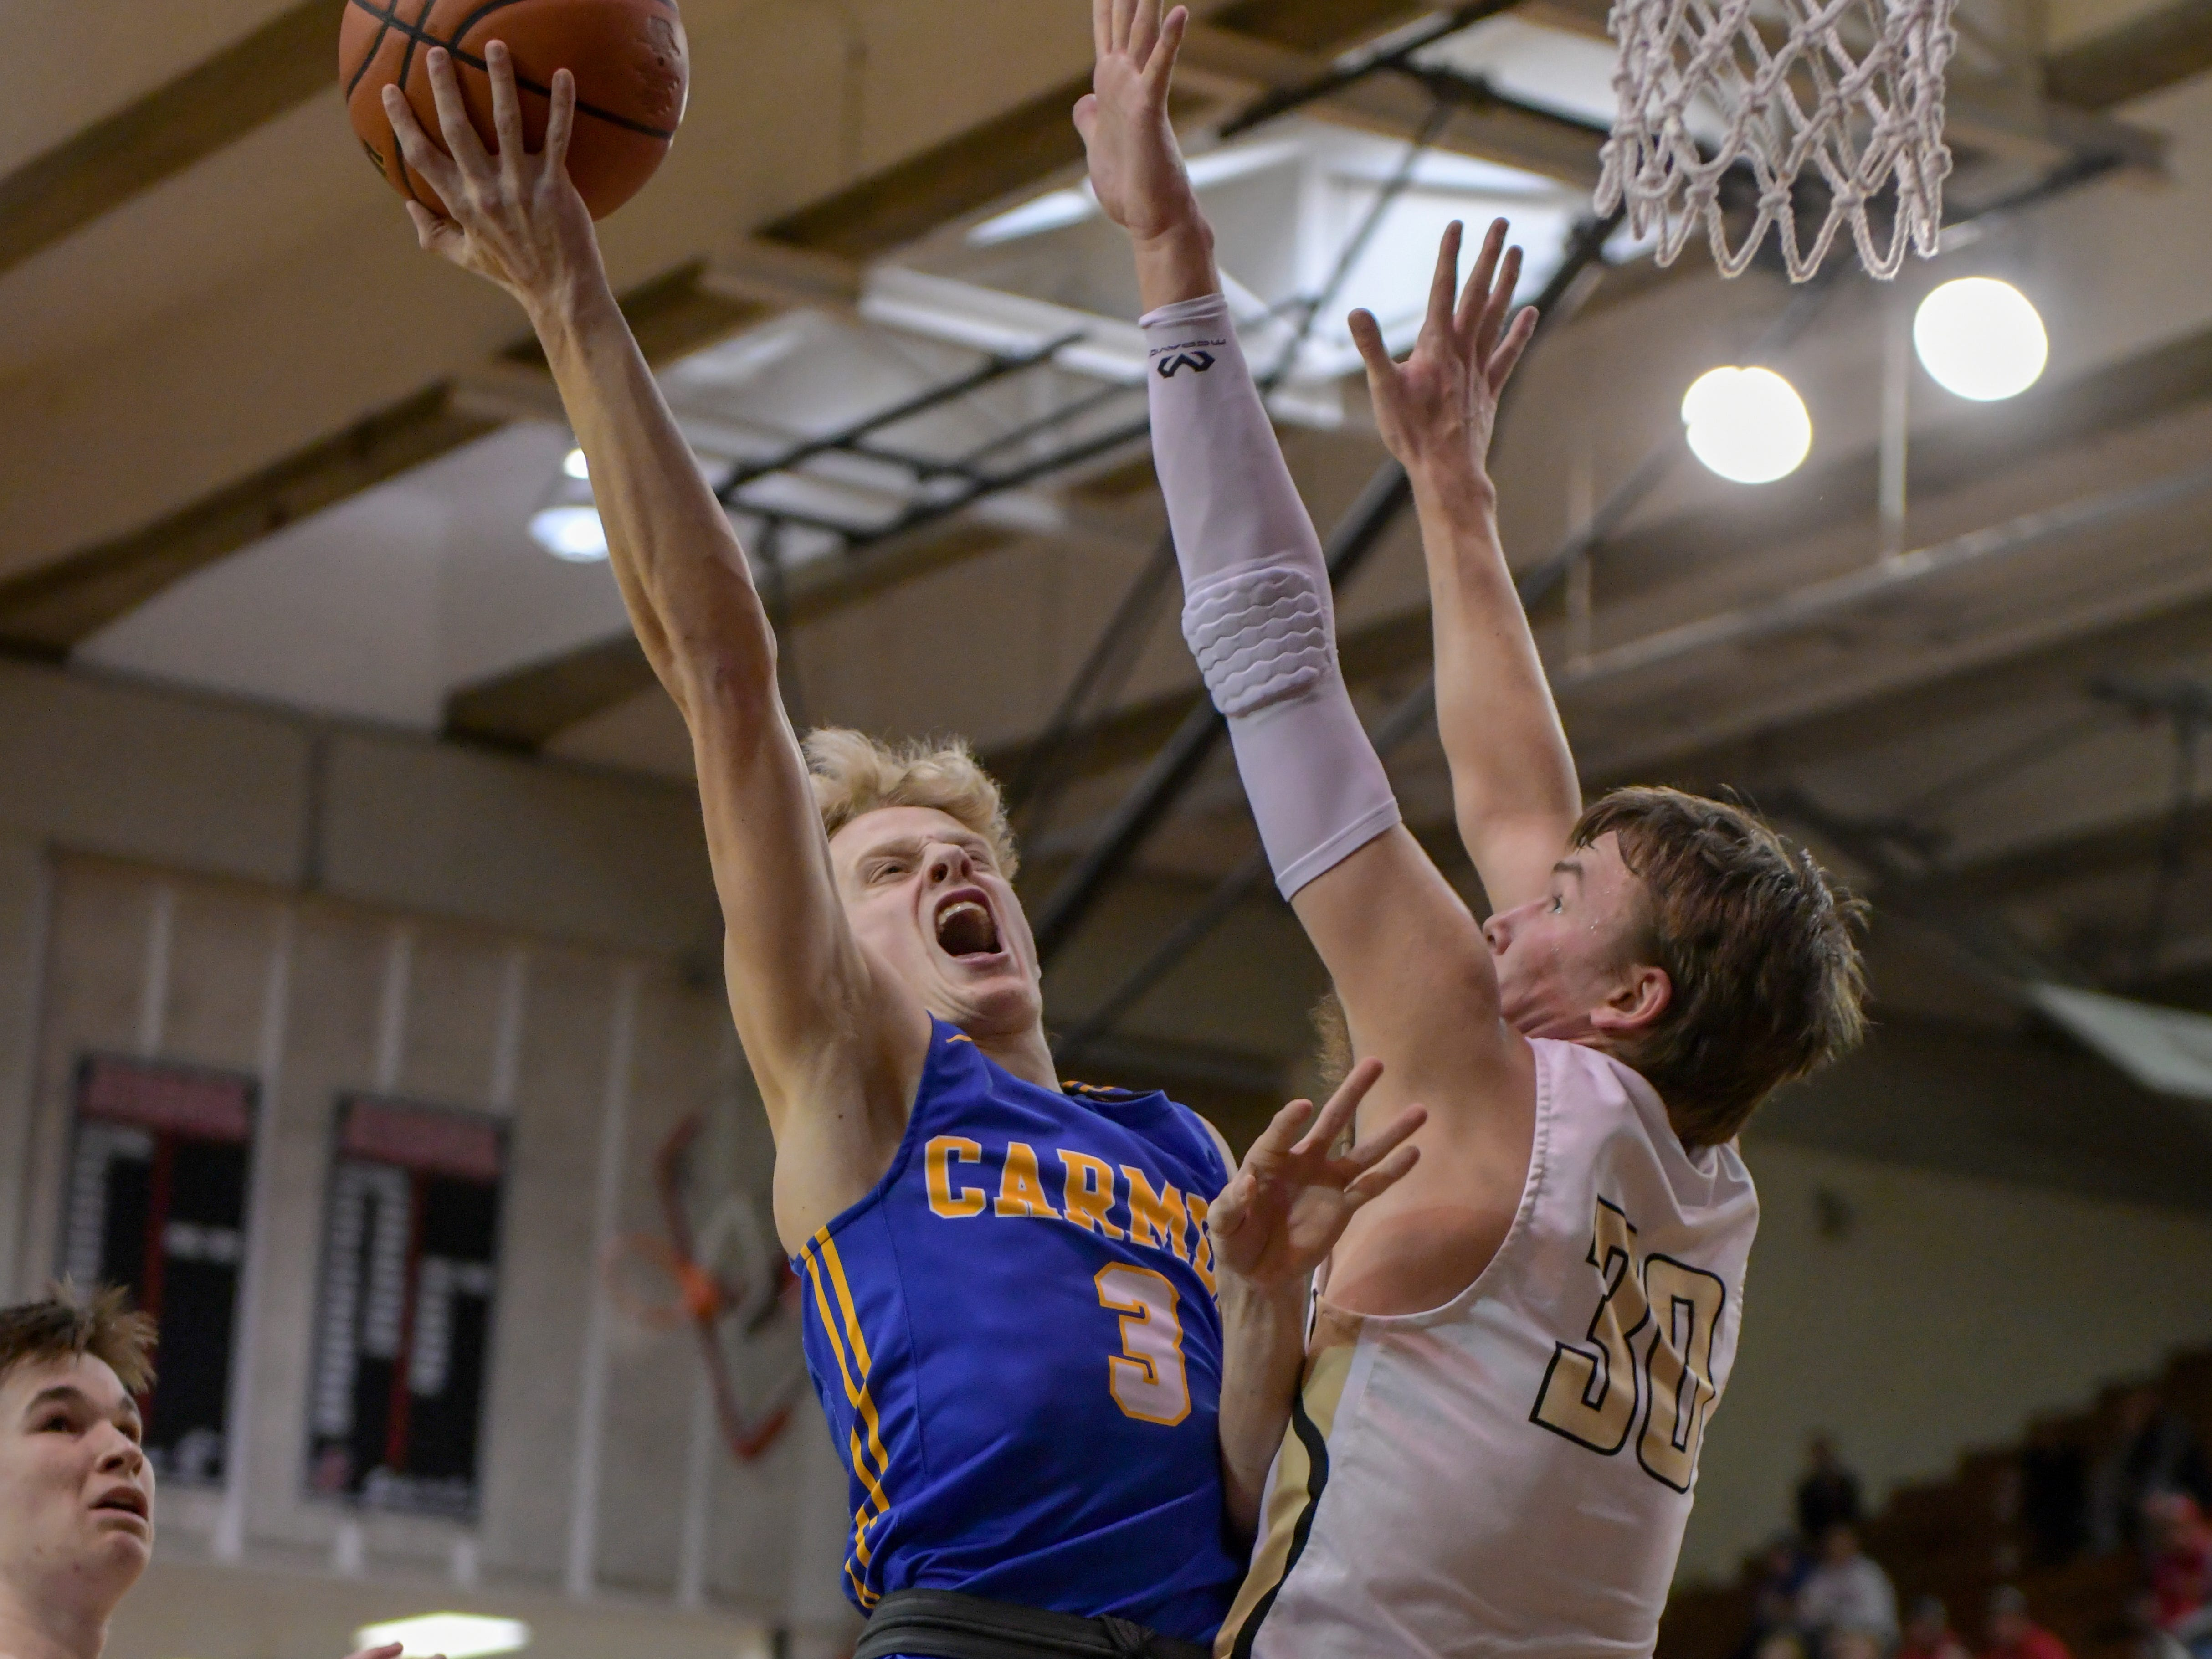 Carmel's Karsten Windlan drives the lane for a basket in the first half against Penn High School in Lafayette on Saturday March 16, 2019. Carmel is battling Penn in the 4A semi-state today.